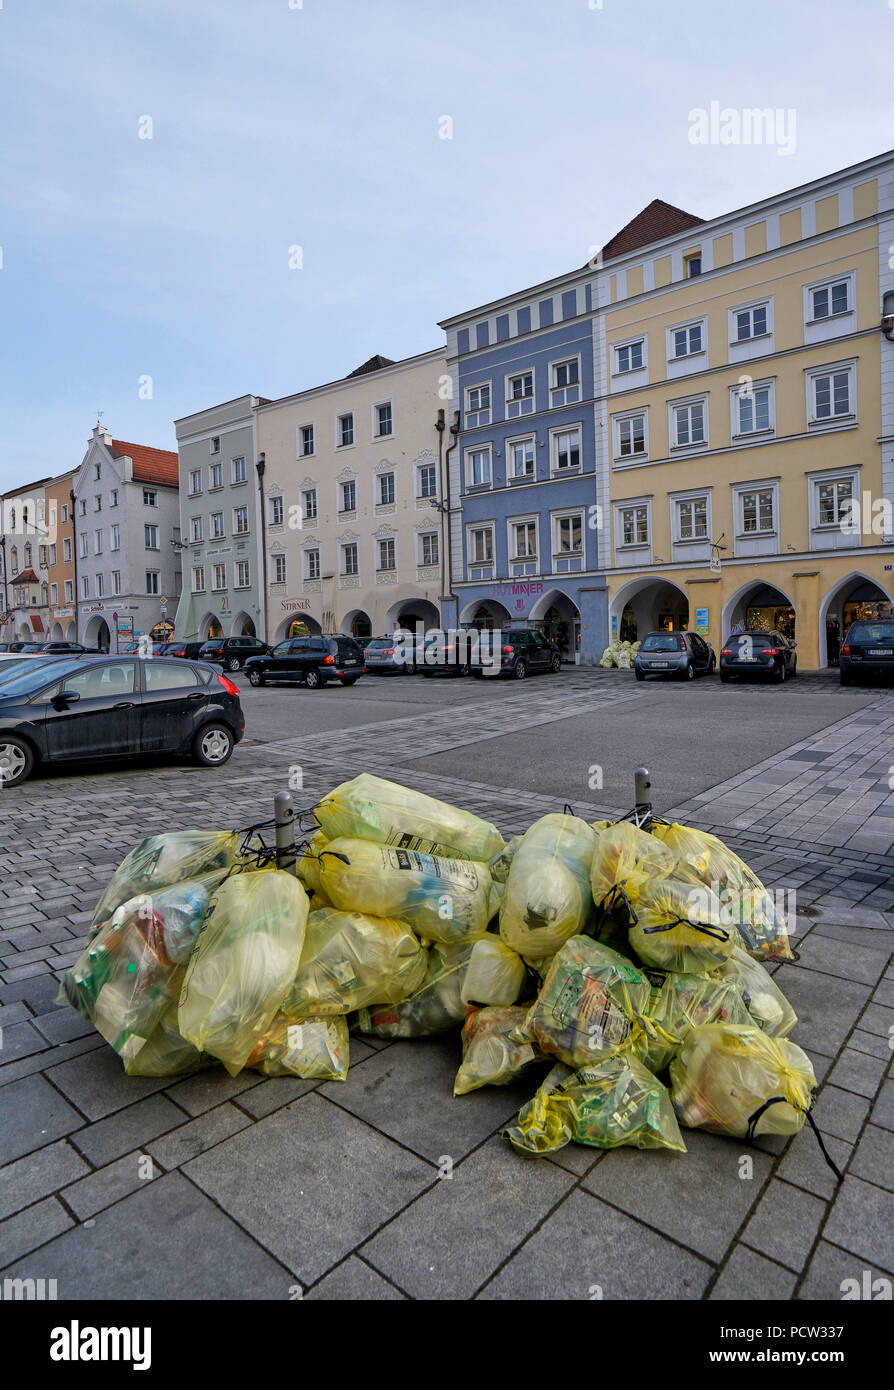 Germany, Bavaria, Upper Bavaria, Neuötting, city square, yellow sacks, waste separation Stock Photo